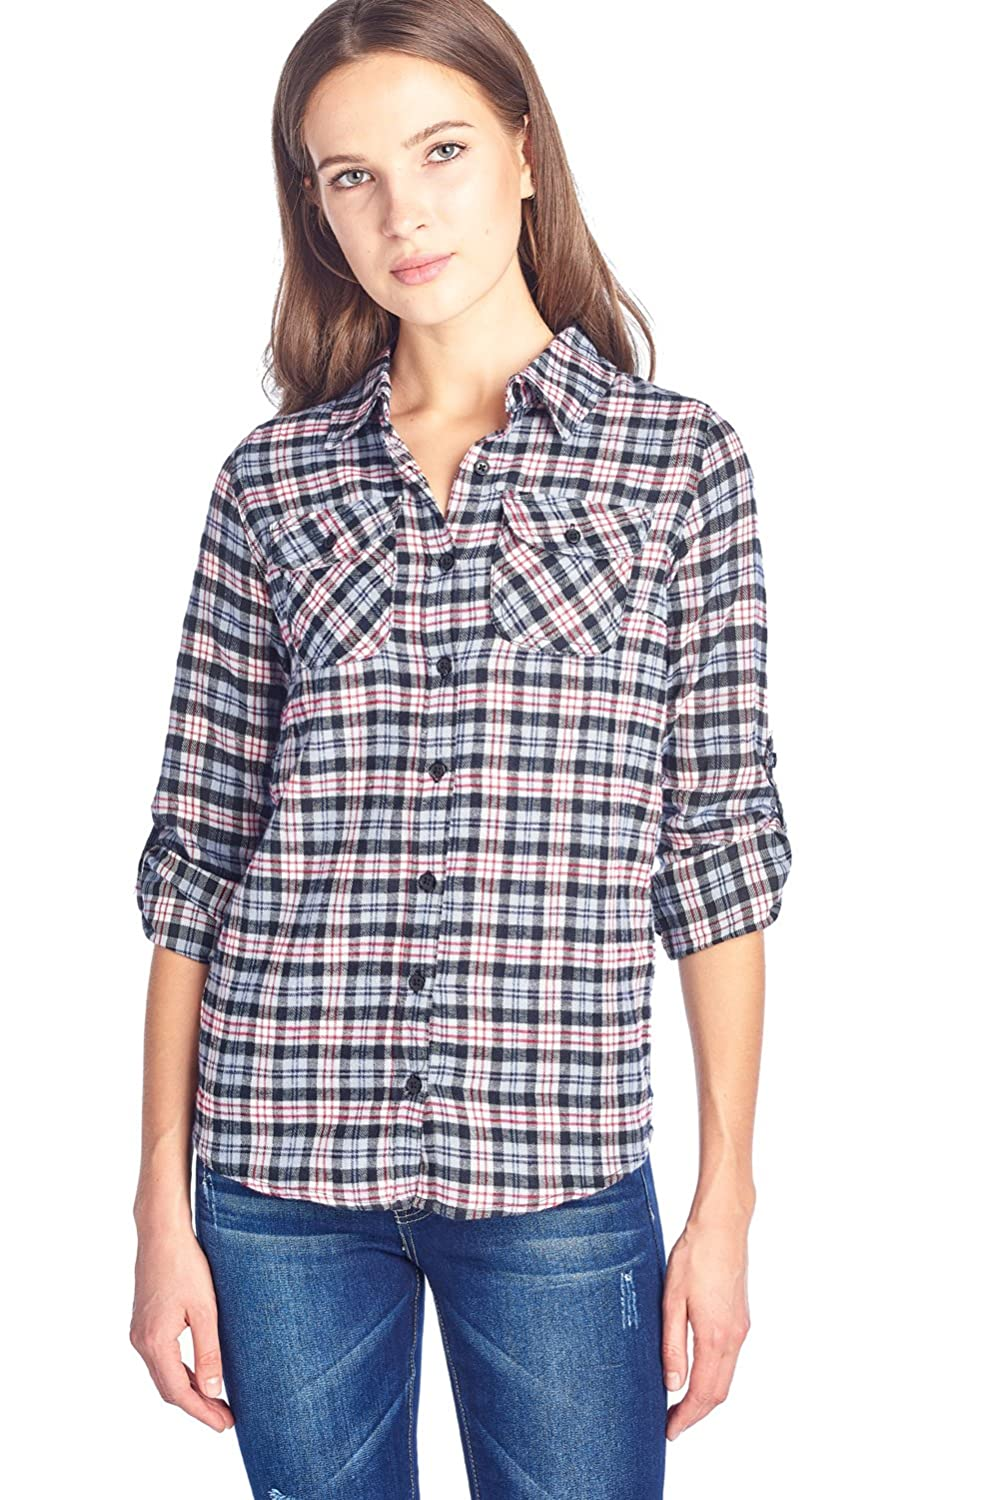 c6b8ae1b88d Top 10 wholesale Women In Flannel Shirts - Chinabrands.com